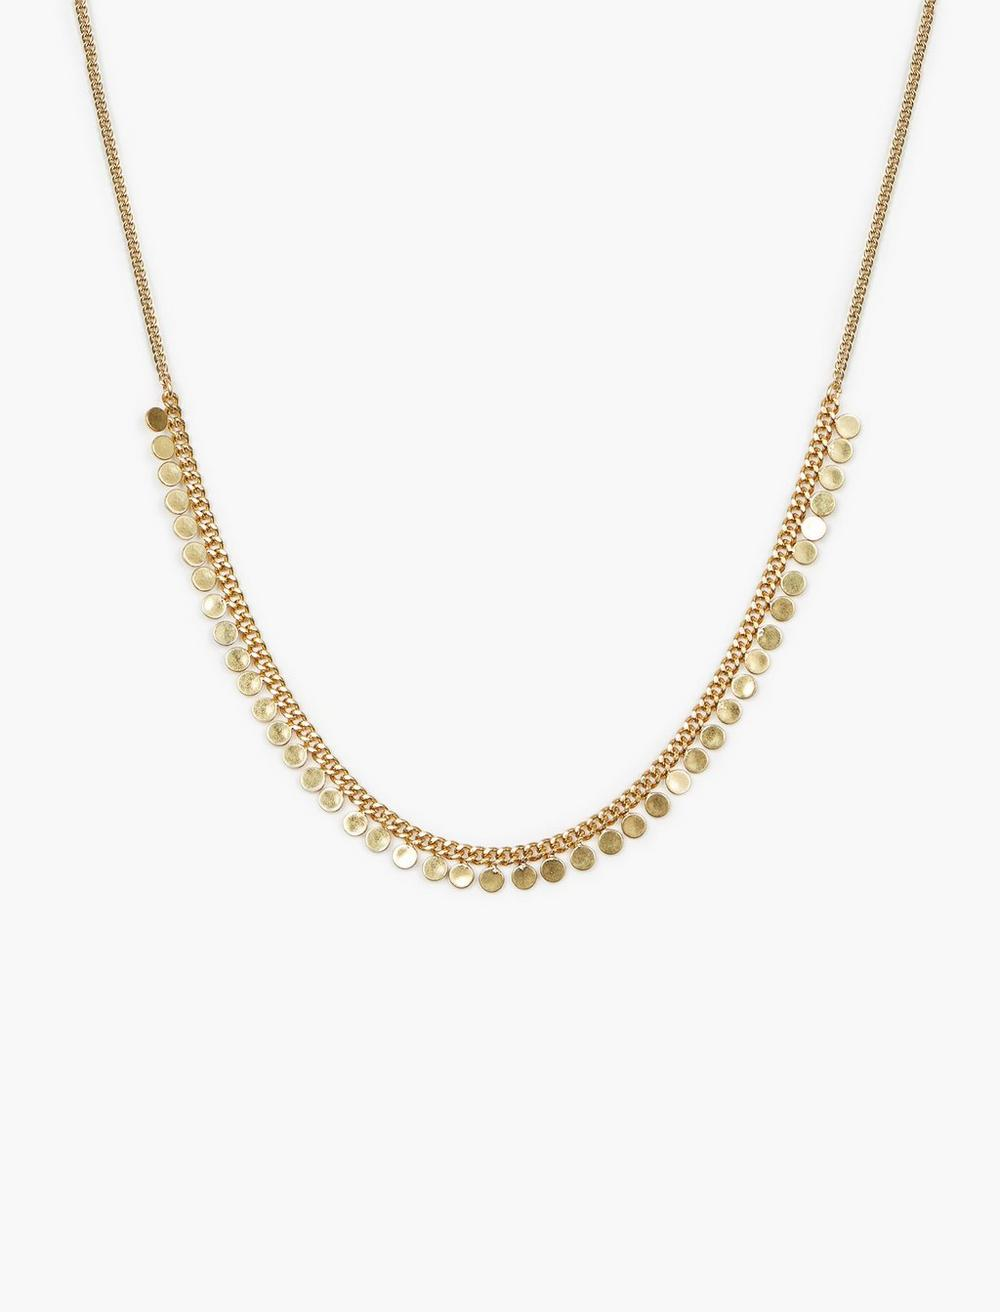 CHAIN NECKLACE, image 3